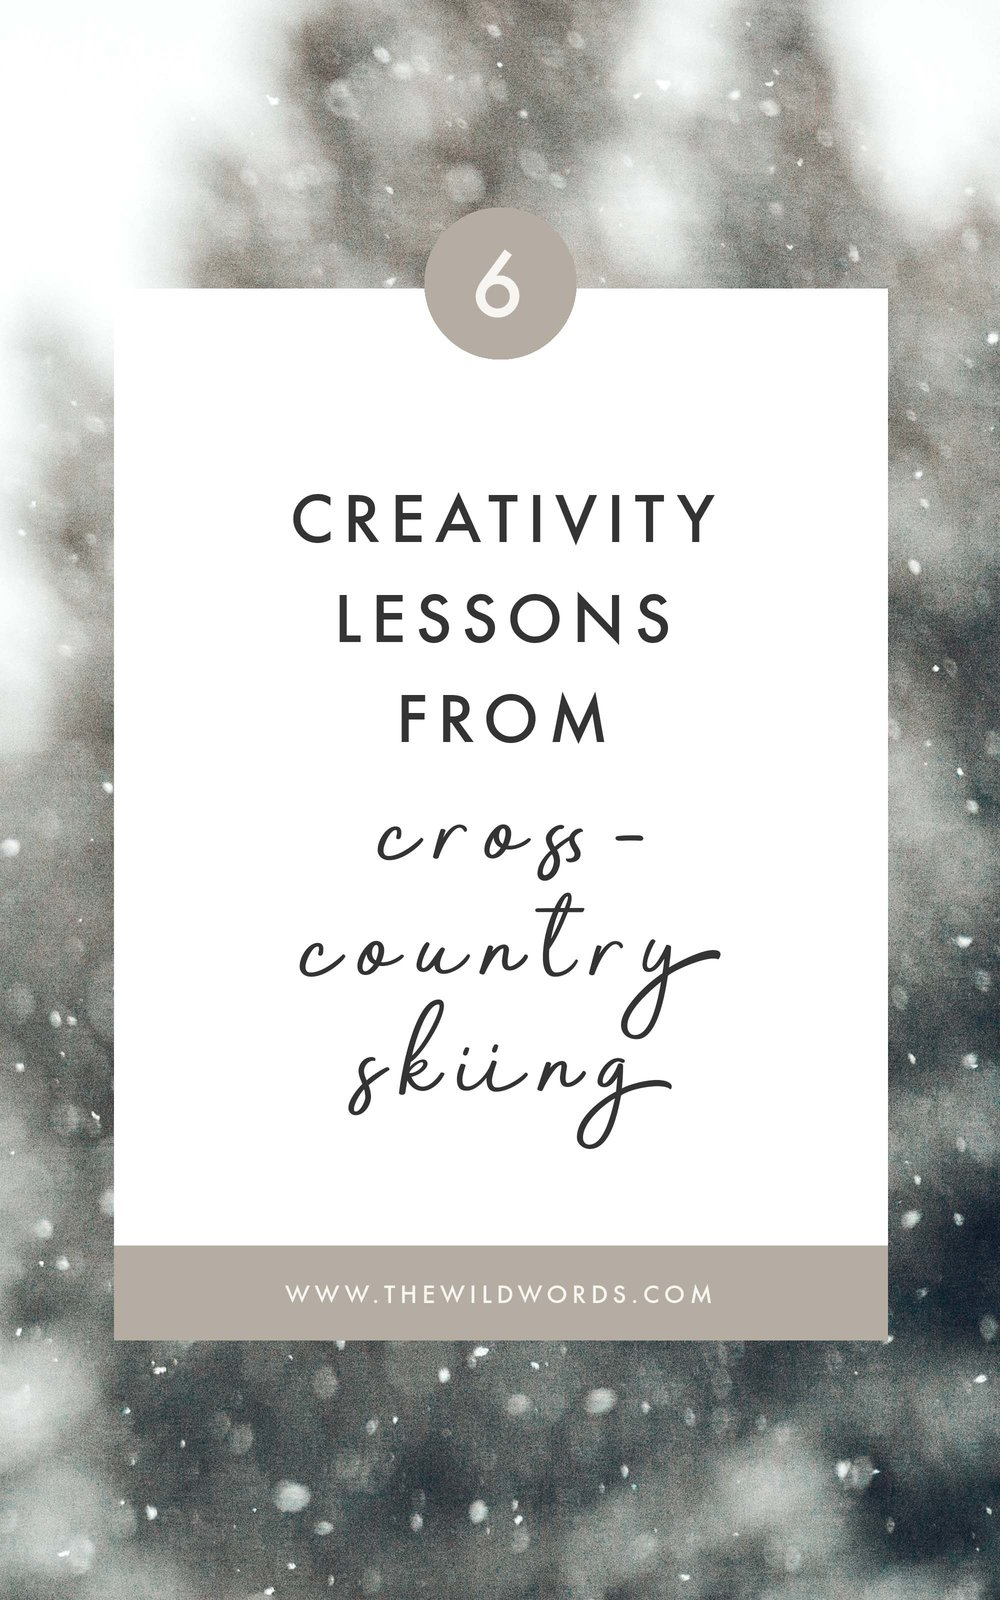 6 Creativity Lessons From Cross-Country Skiing | via Wild Words